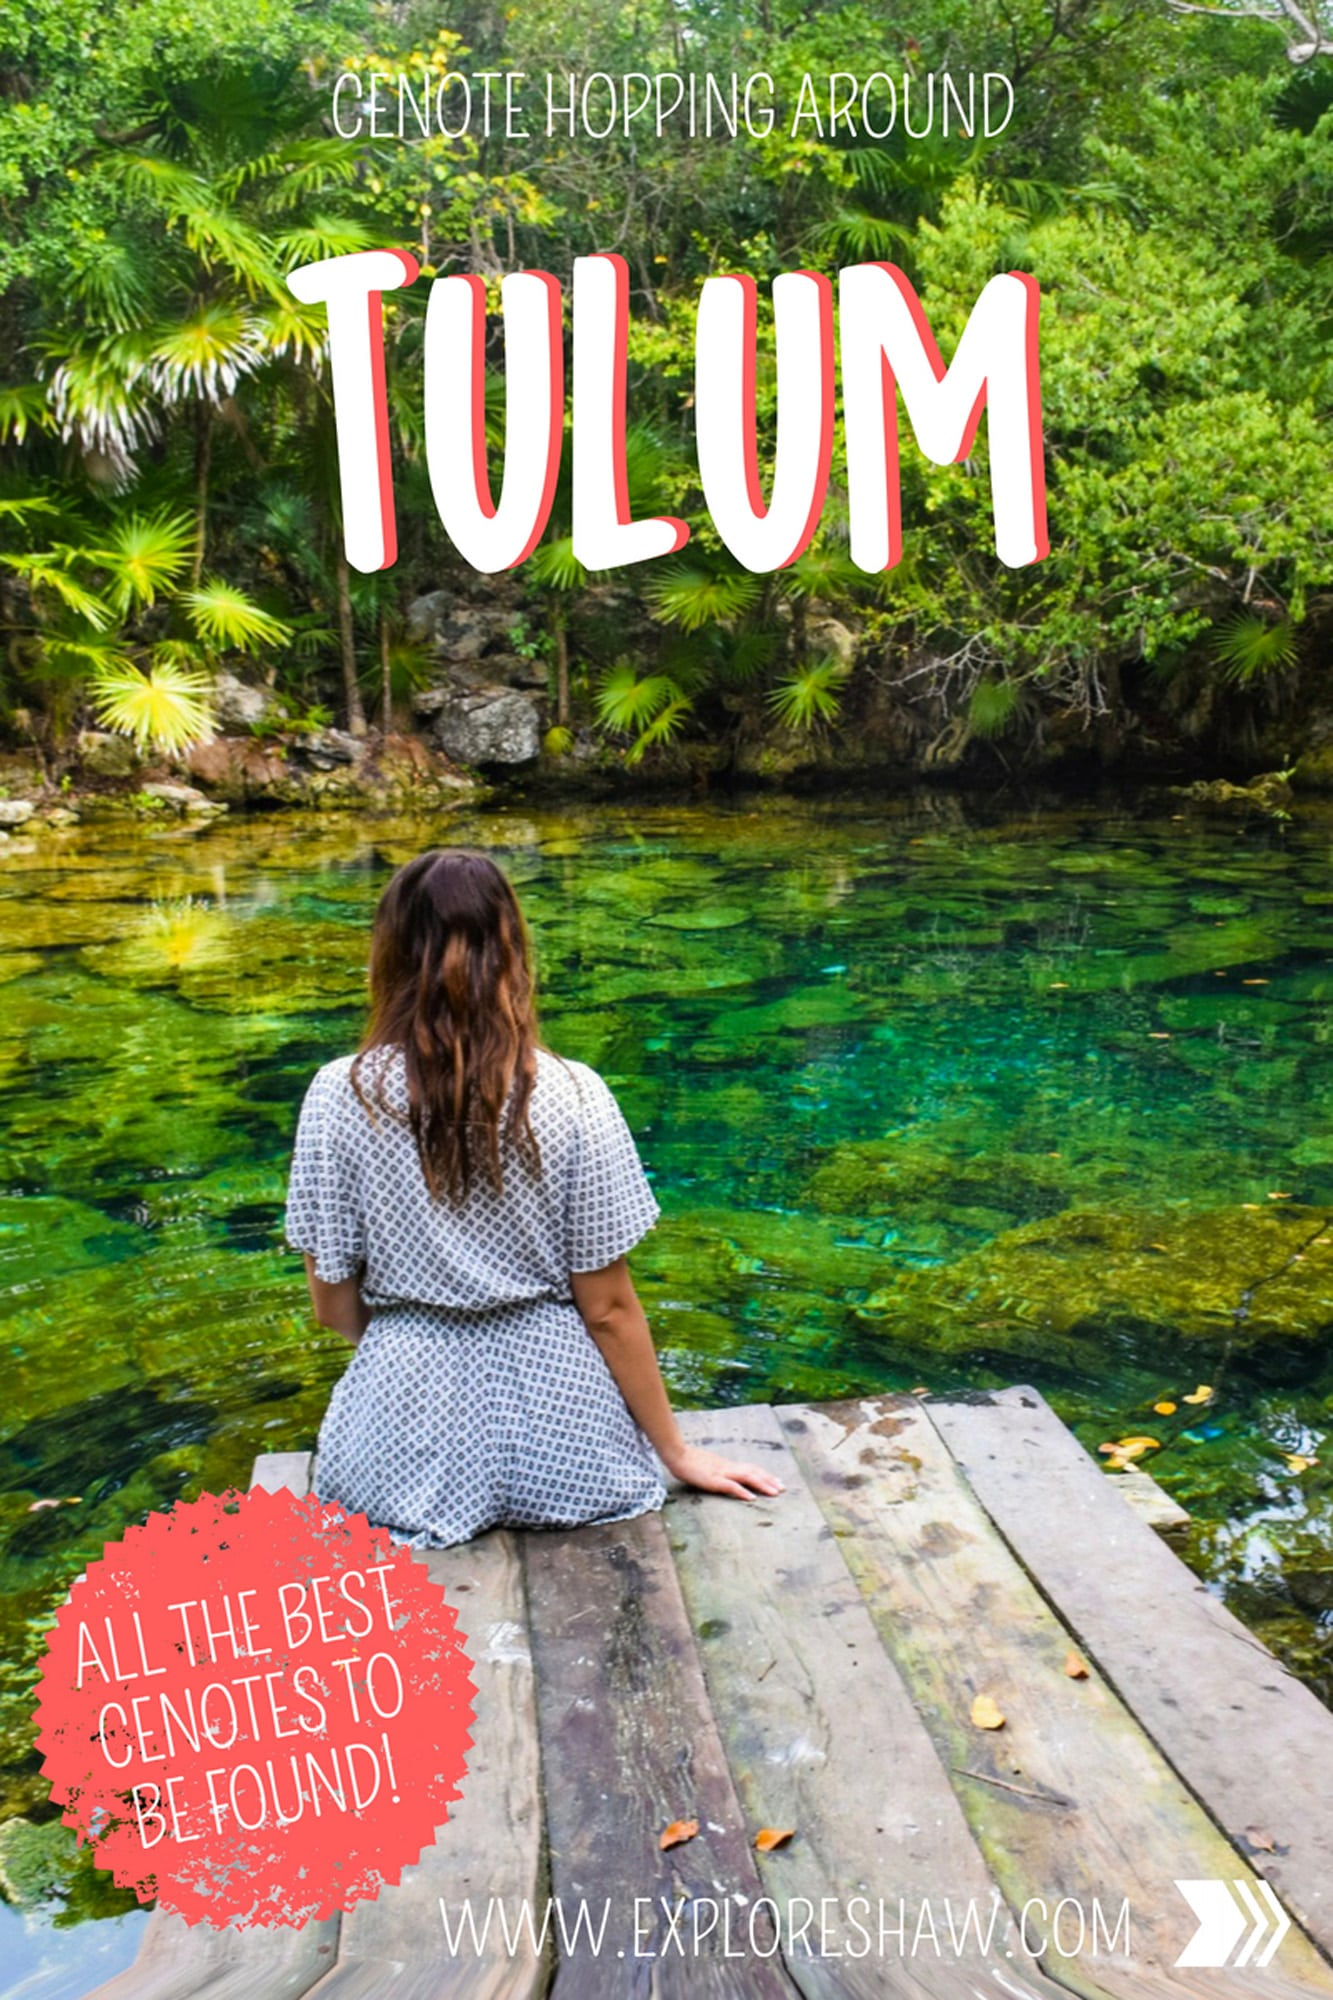 CENOTE HOPPING AROUND TULUM